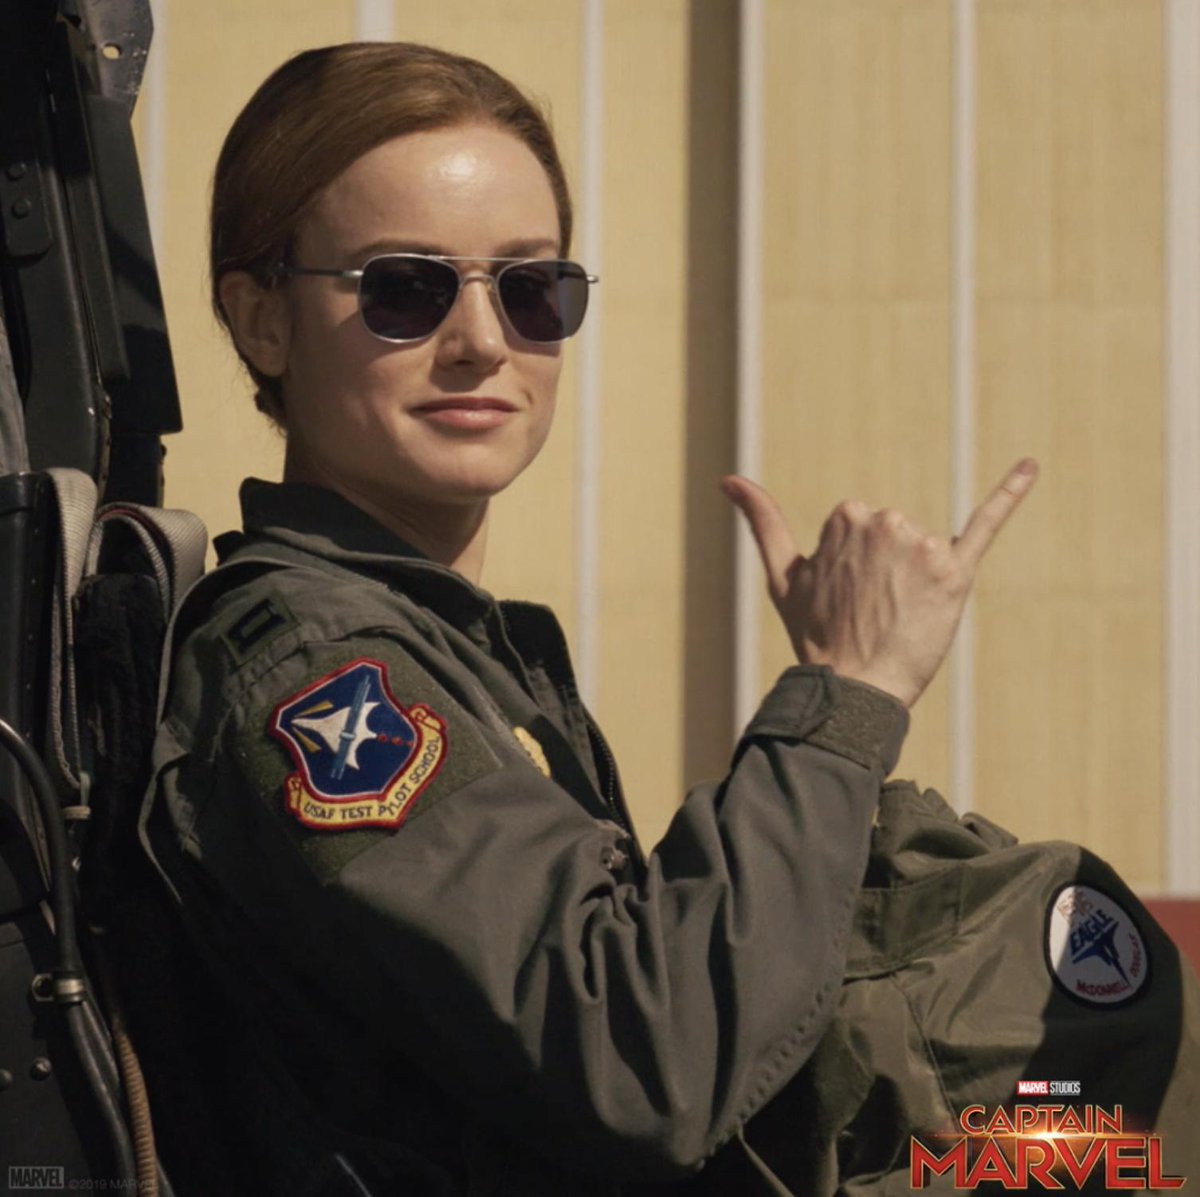 Discover what makes her a hero. Get tickets to Marvel Studios' #CaptainMarvel, in theaters March 8: http://www.Fandango.com/CaptainMarvel